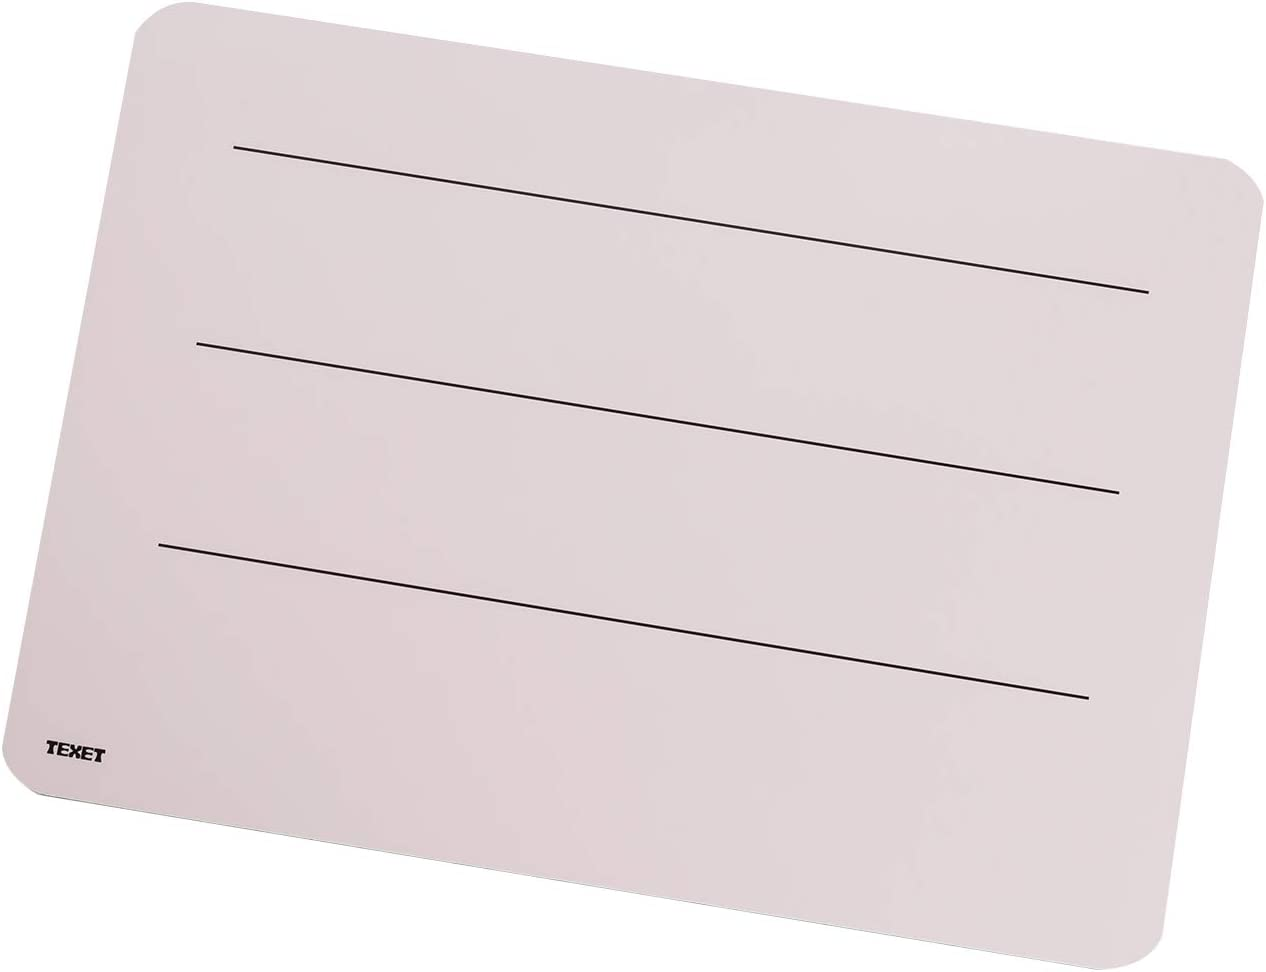 Texet A4 3Line Double-Sided Lapboard Pink PK5